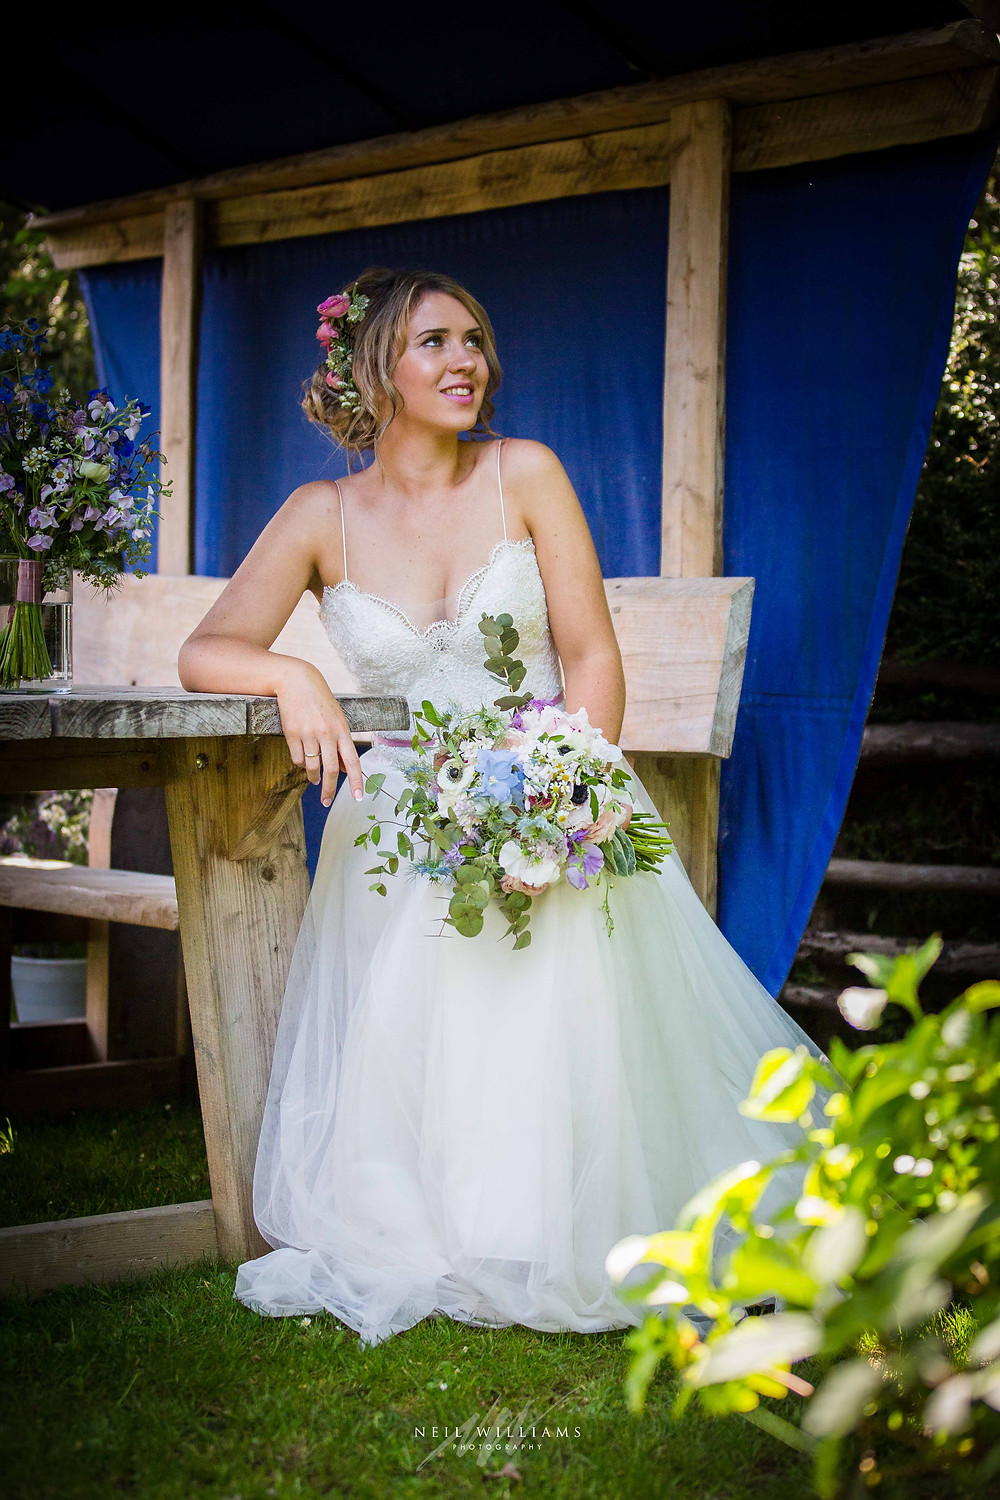 pembrokeshire, wedding, photography, neil, williams, south wales photographer, cardiff, swansea, carmarthen, bristol, cotswolds, llys meddyg, rustic, alternative, boho, bridal portrait,